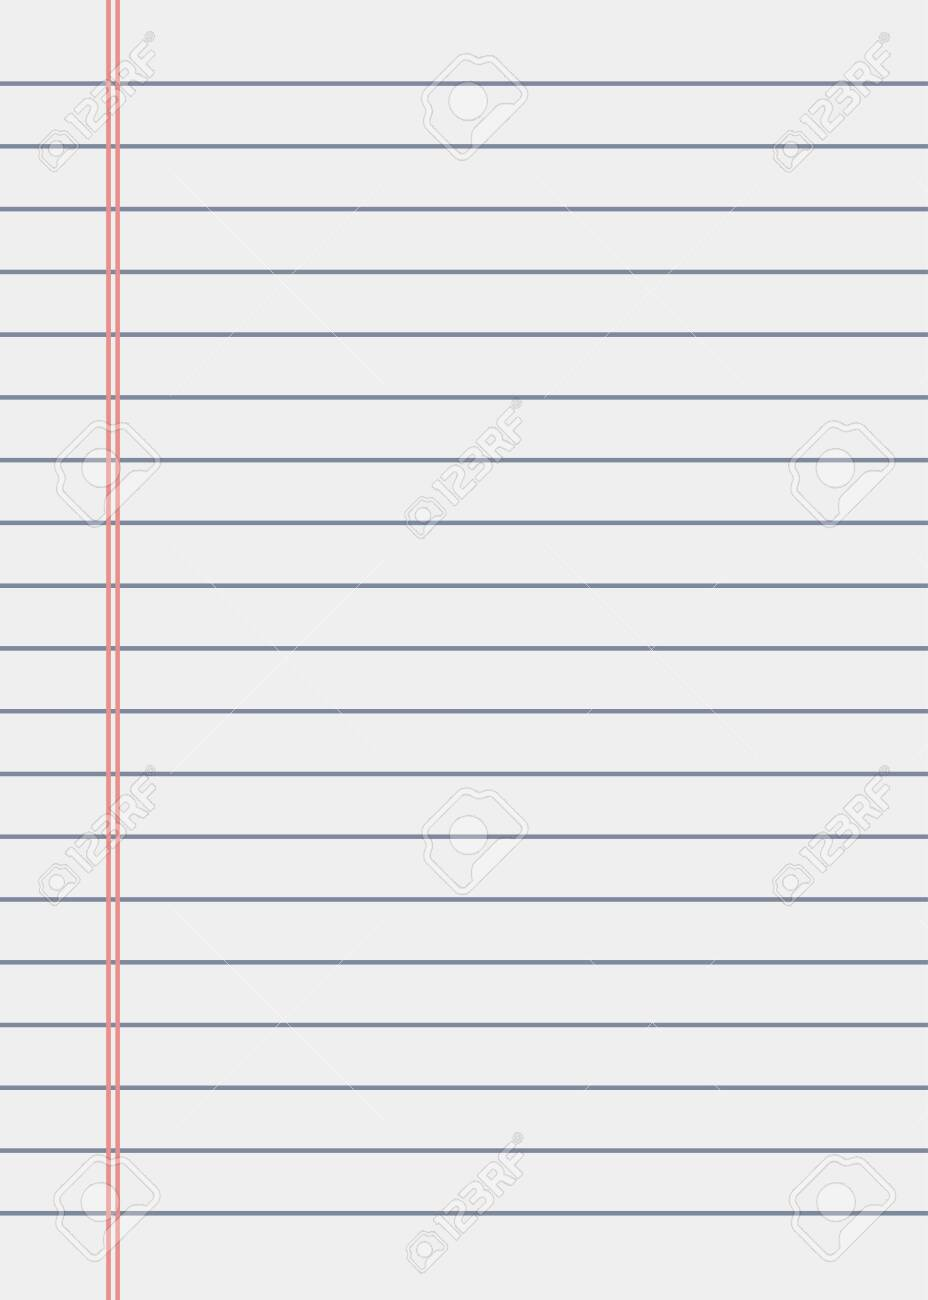 Notebook paper background. Lined paper vector illustration - 152043926